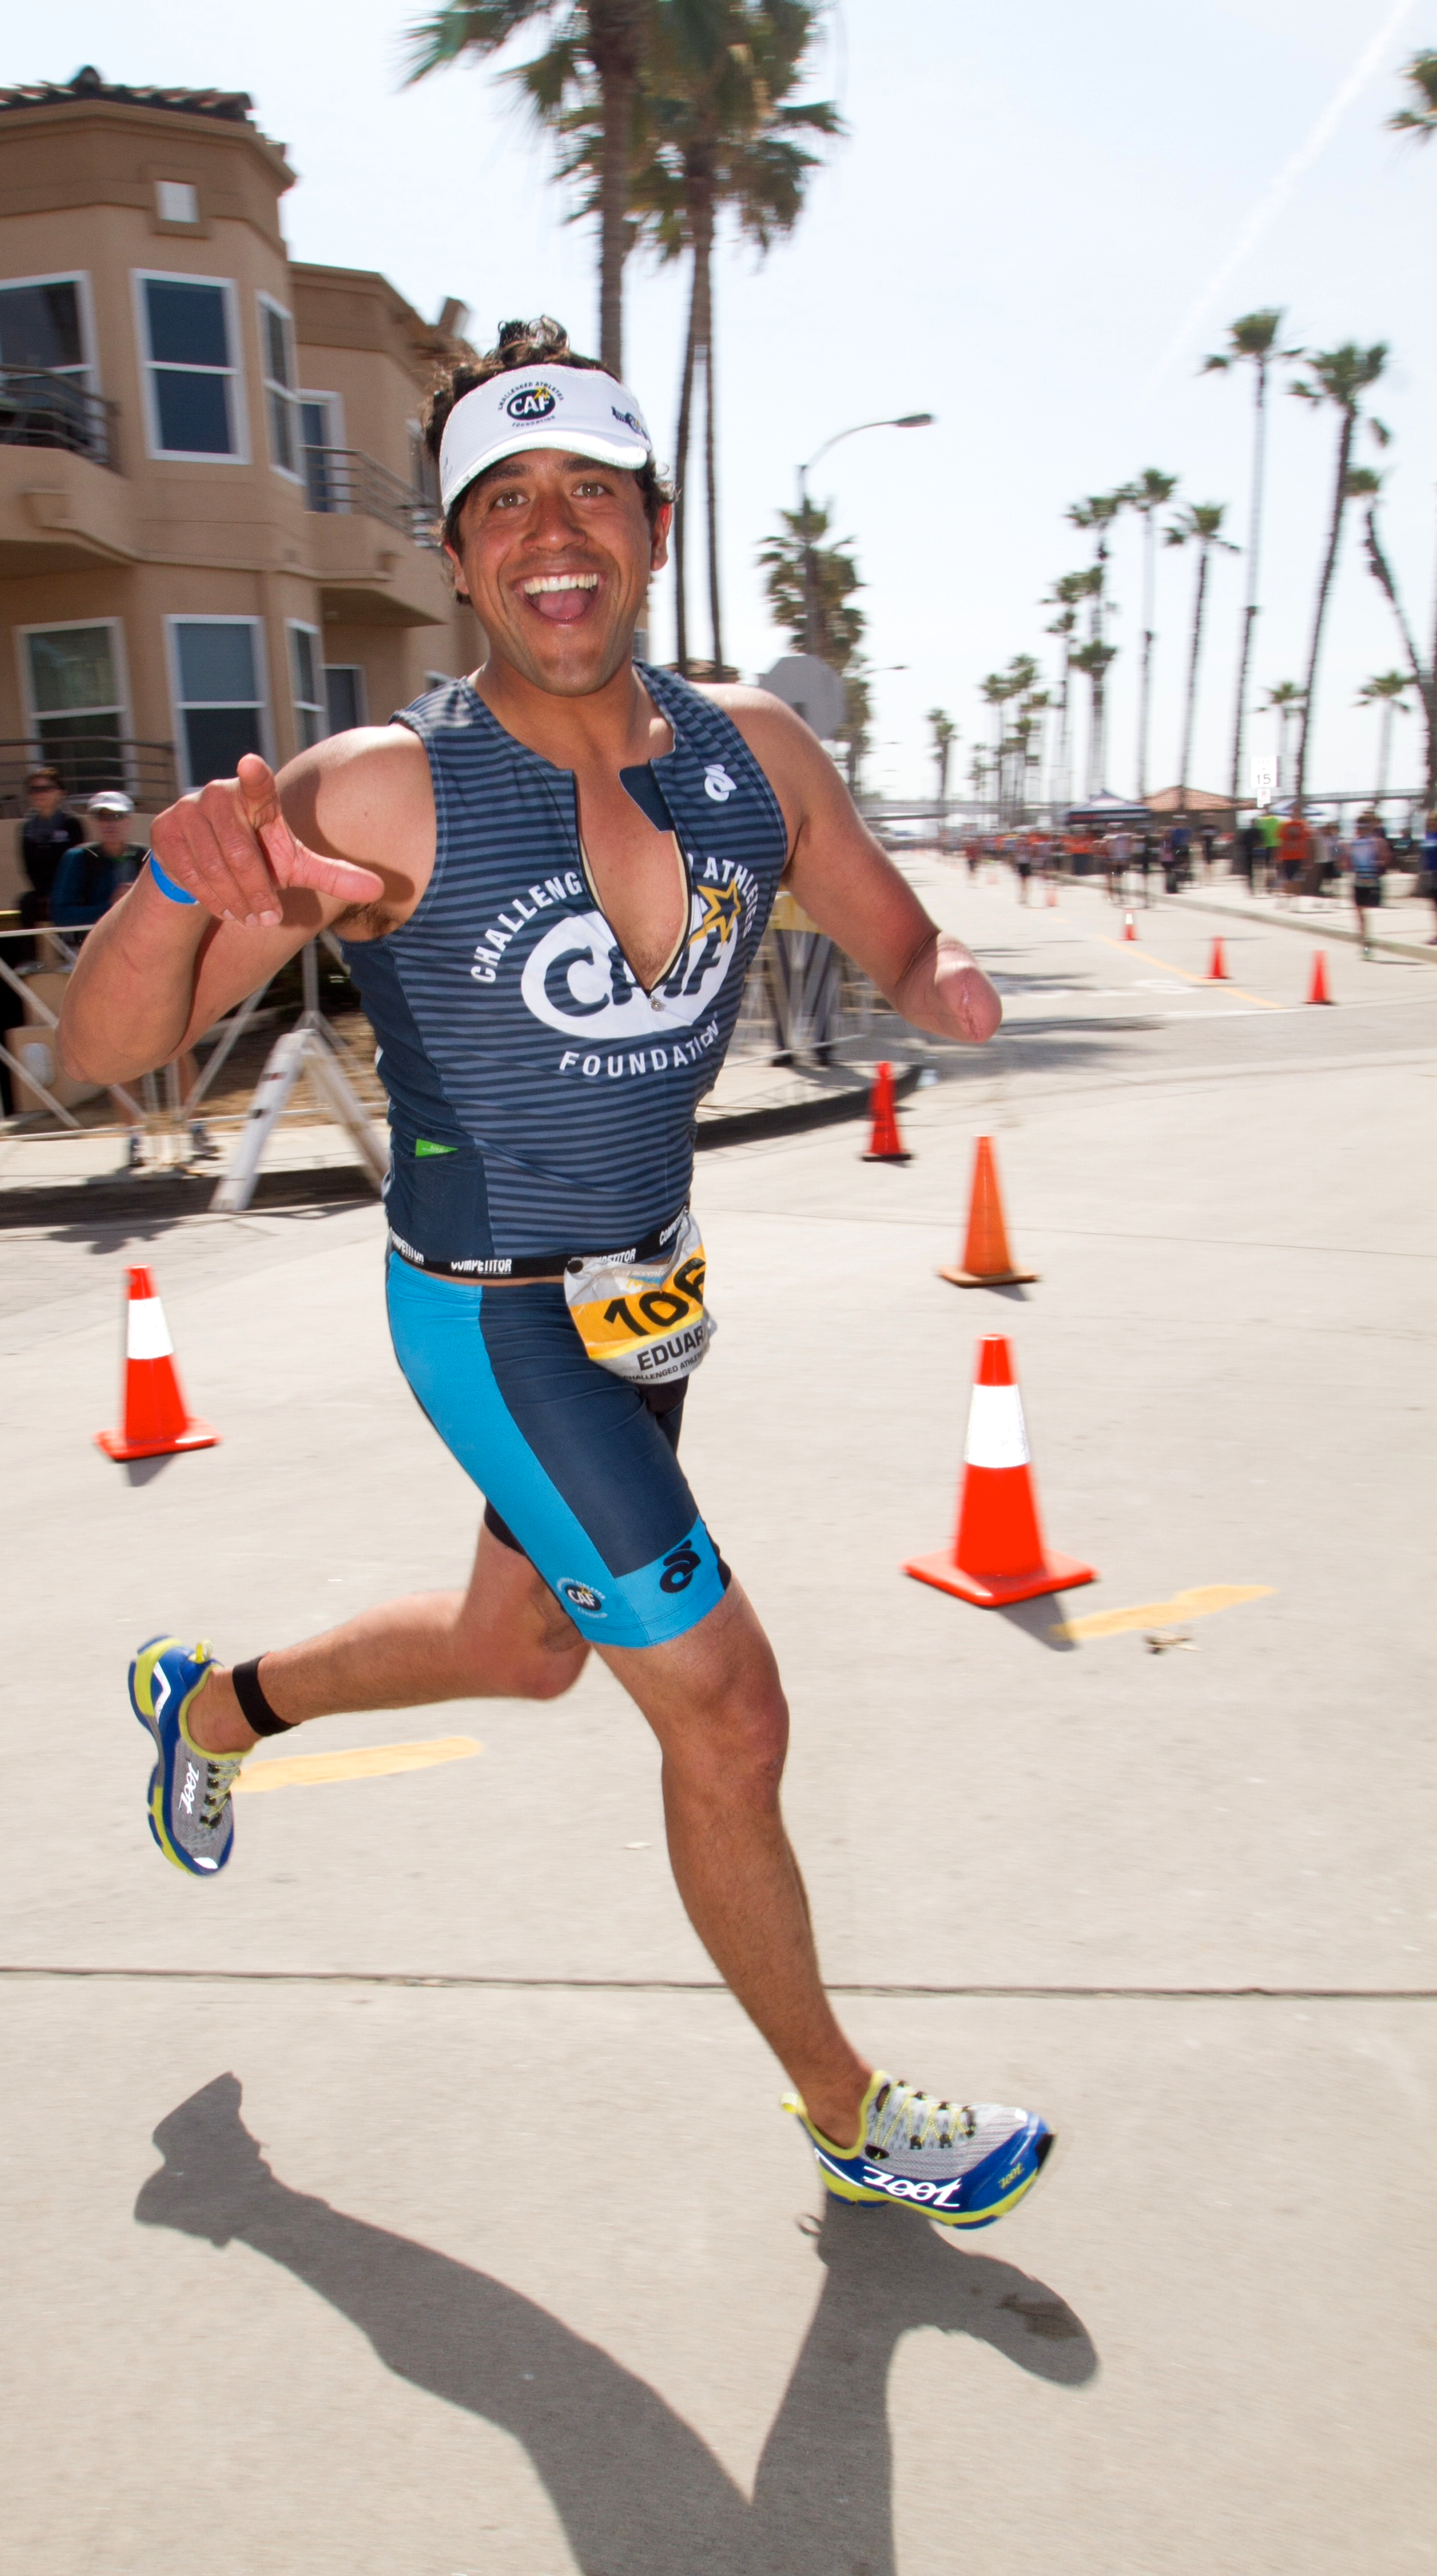 Eduardo coming into the finish line at the end of his first Half Ironman.